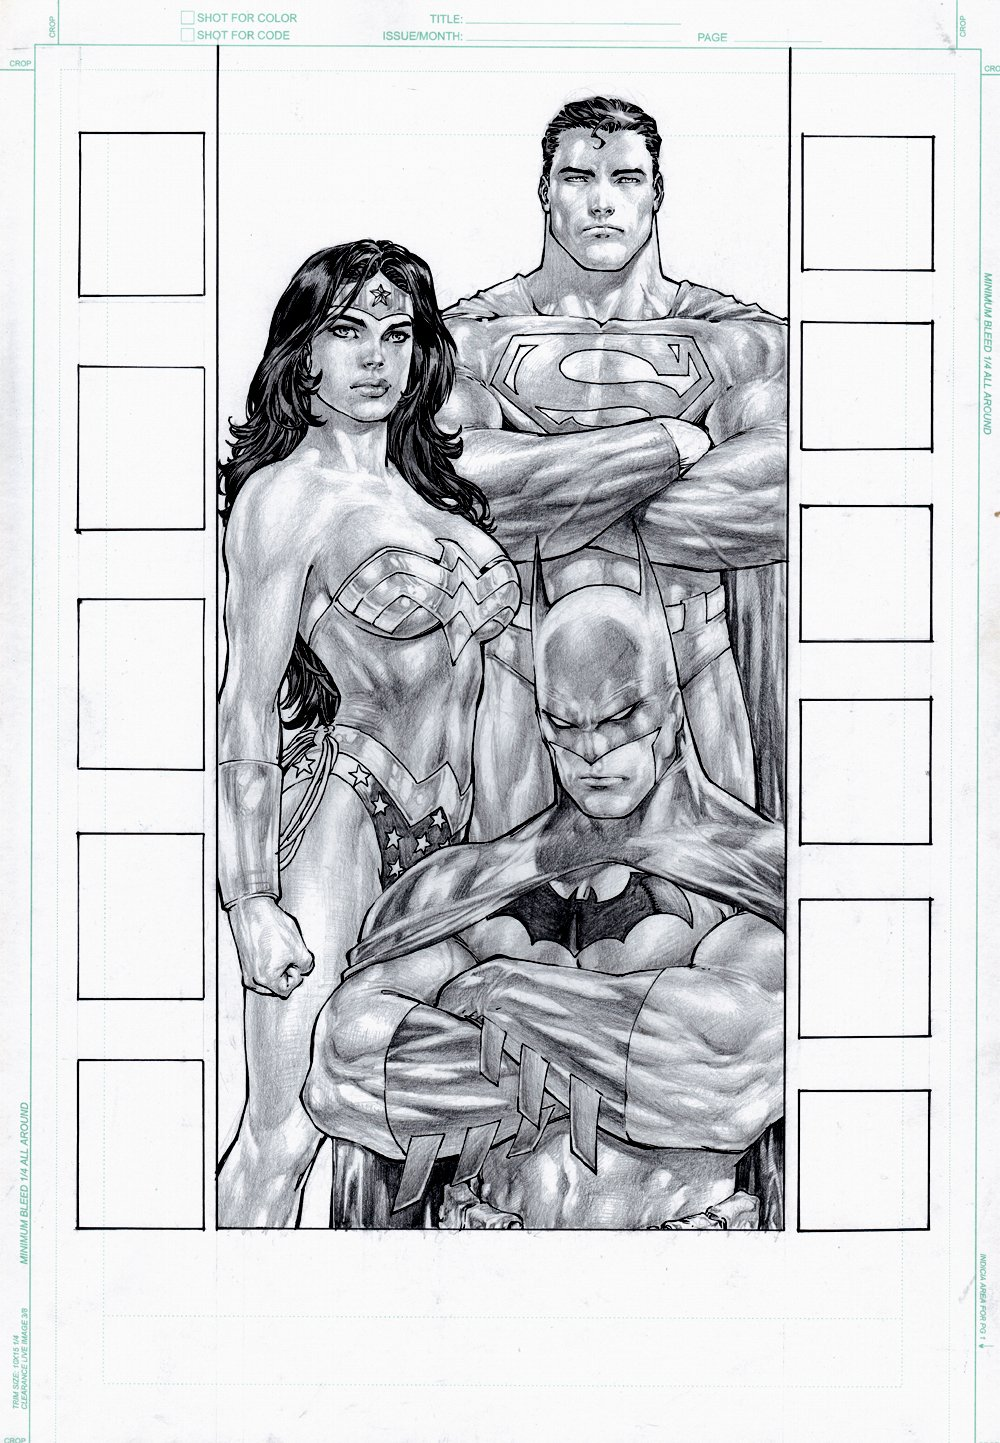 Justice League of America #25 p 1 SPLASH (Superman, Batman, Wonder Woman!) 2008